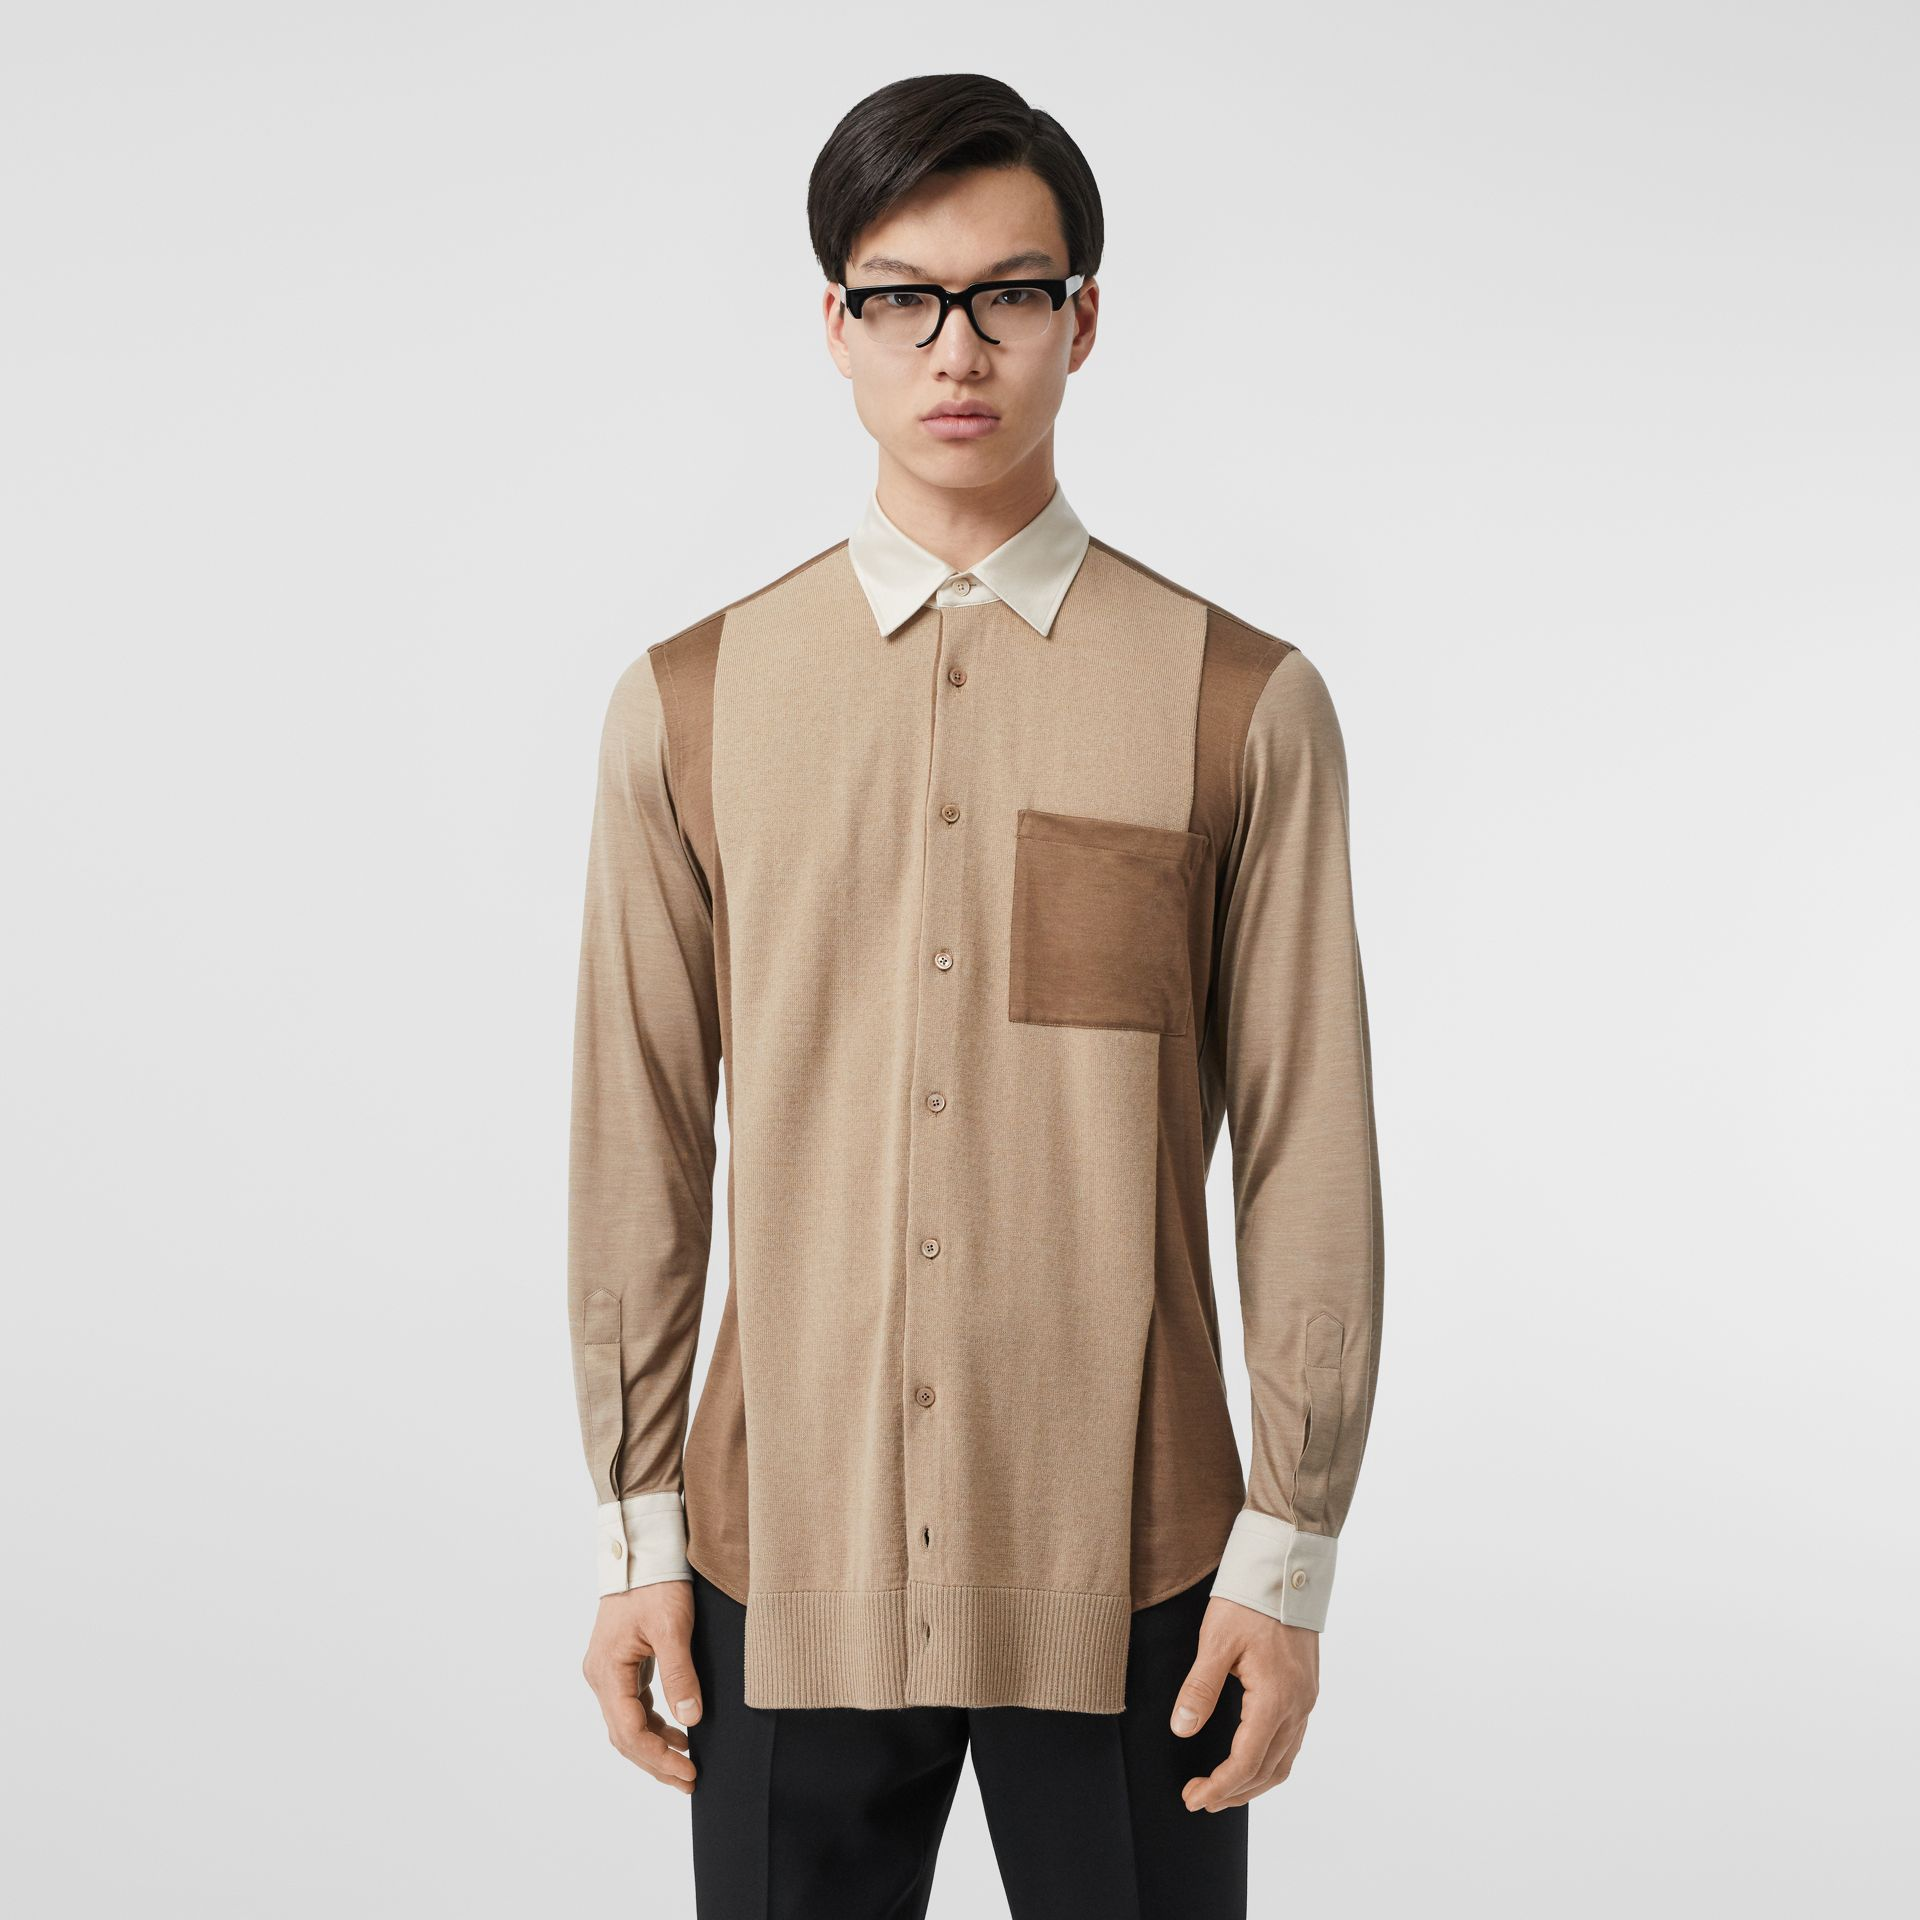 Classic Fit Panelled Silk and Merino Wool Shirt in Warm Camel - Men | Burberry Hong Kong S.A.R - gallery image 0